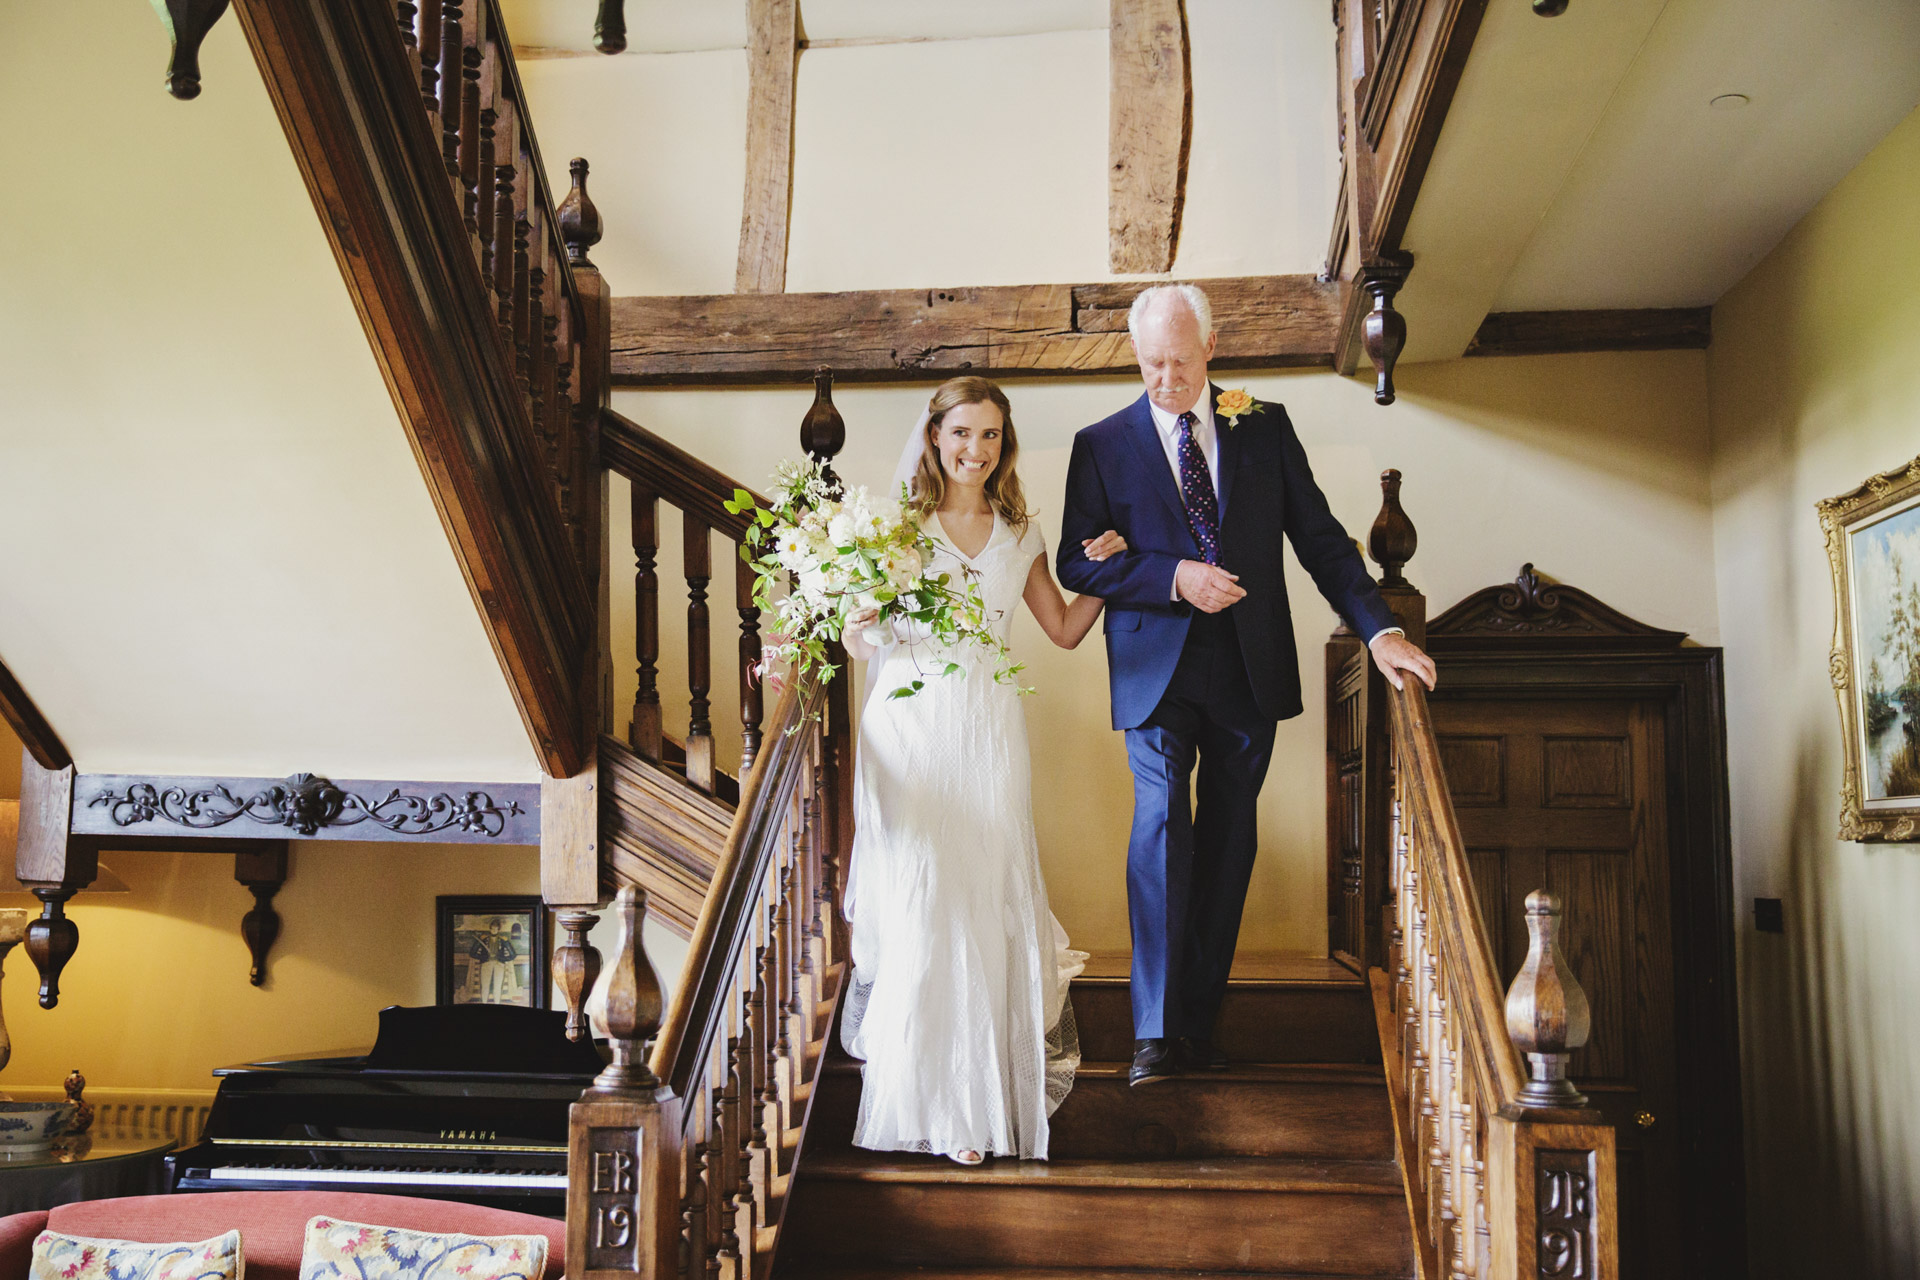 2017-WEDDING-portfolio-gemmawilliamsphotography_172.jpg